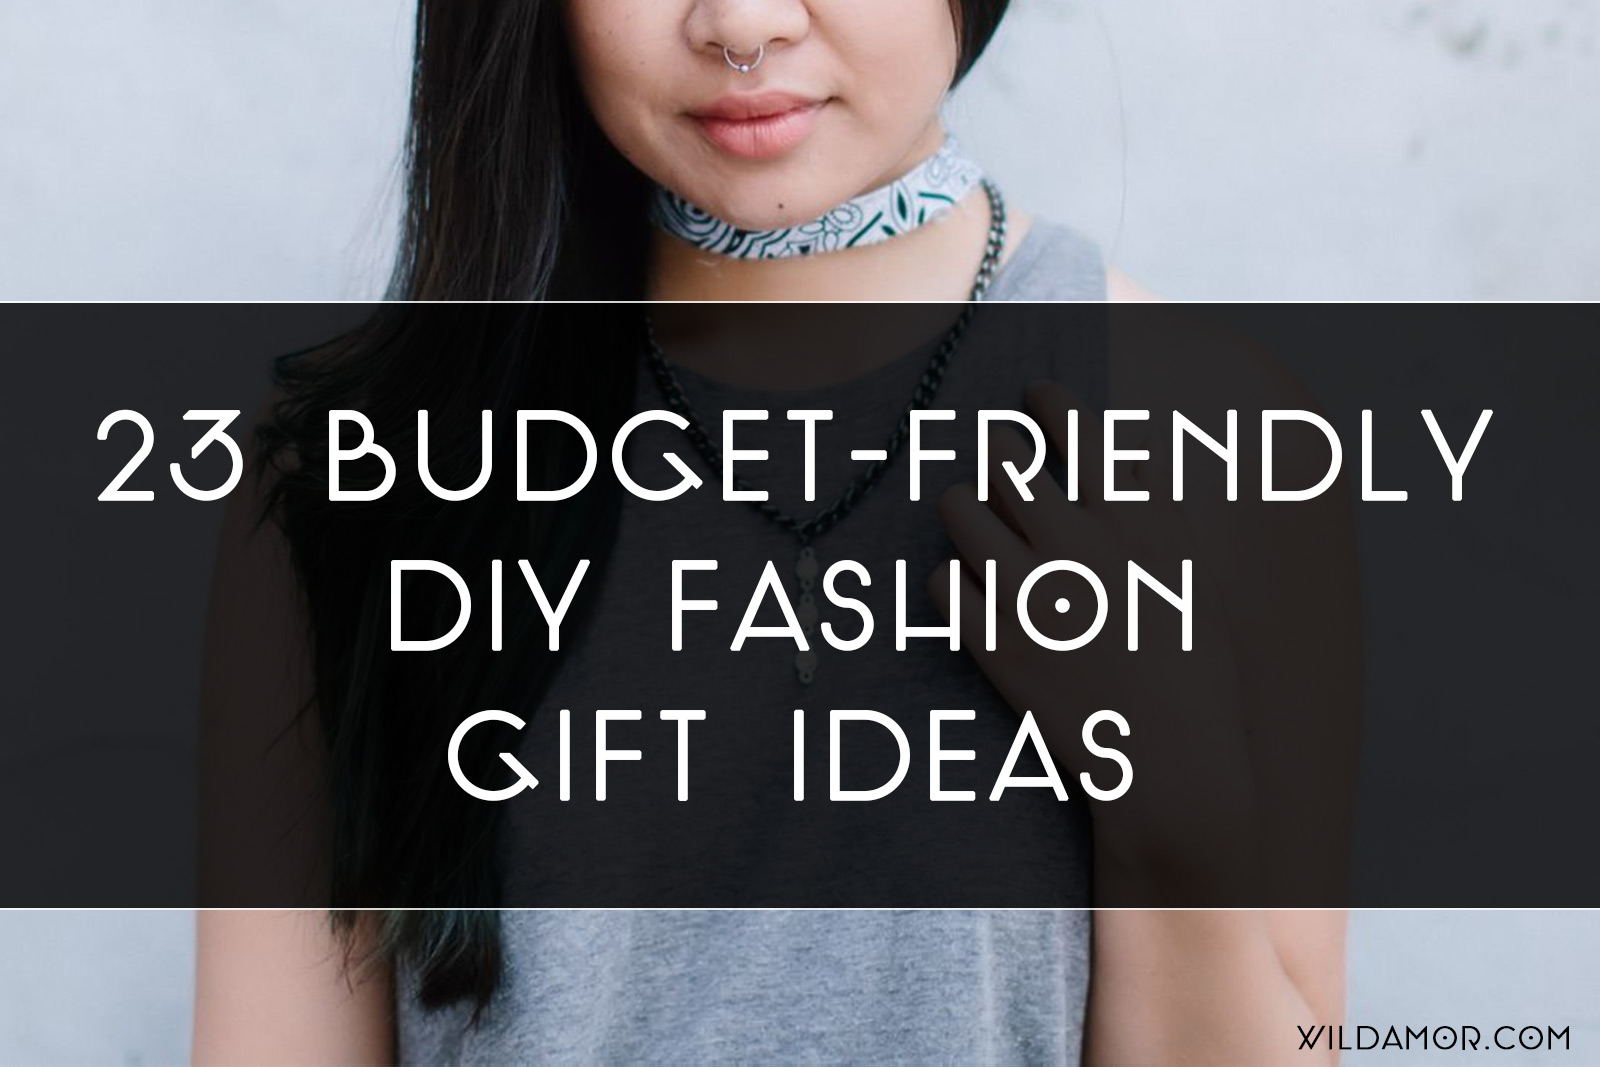 23 Budget-Friendly DIY Fashion Gift Ideas